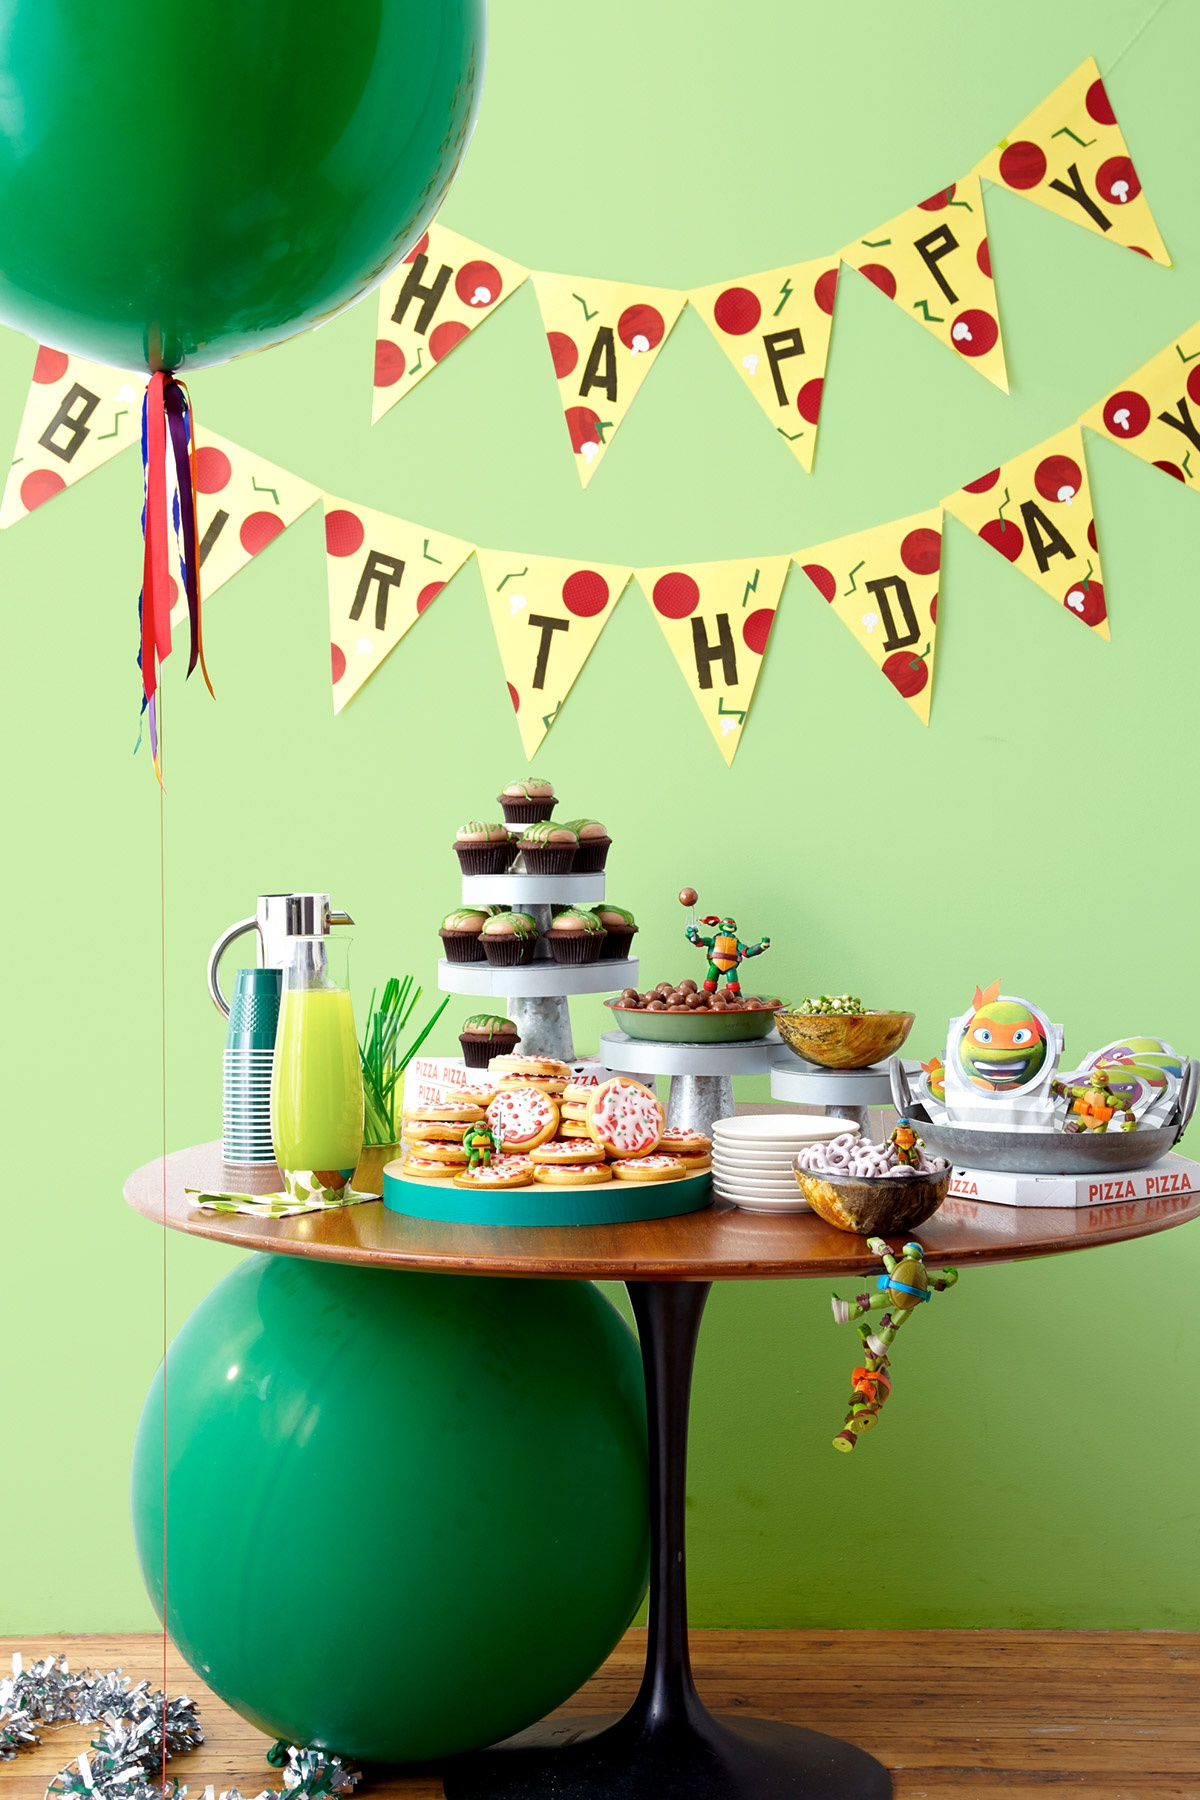 Throw A Ninja Turtles Birthday Party! | Nickelodeon Parents - Free Printable Ninja Turtle Birthday Banner